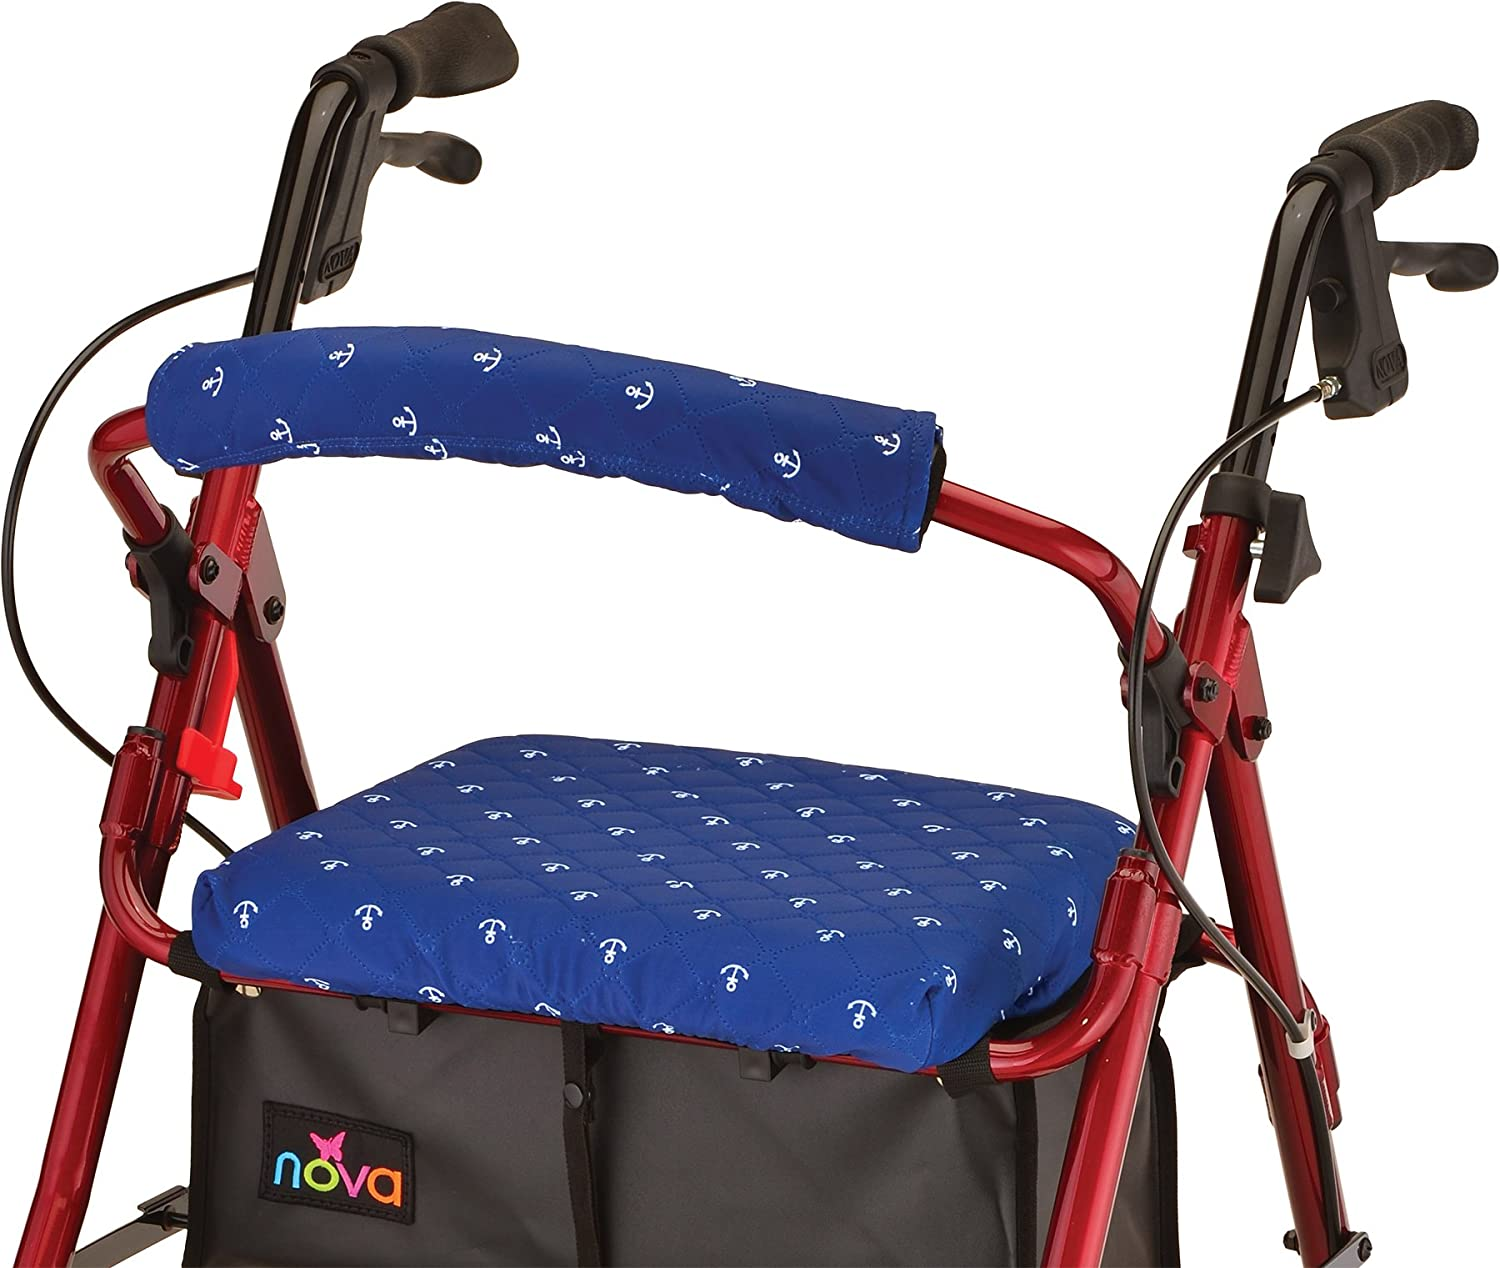 NOVA Rollator Walker Seat & Backrest Covers, Removable and Washable, Anchors Away Design